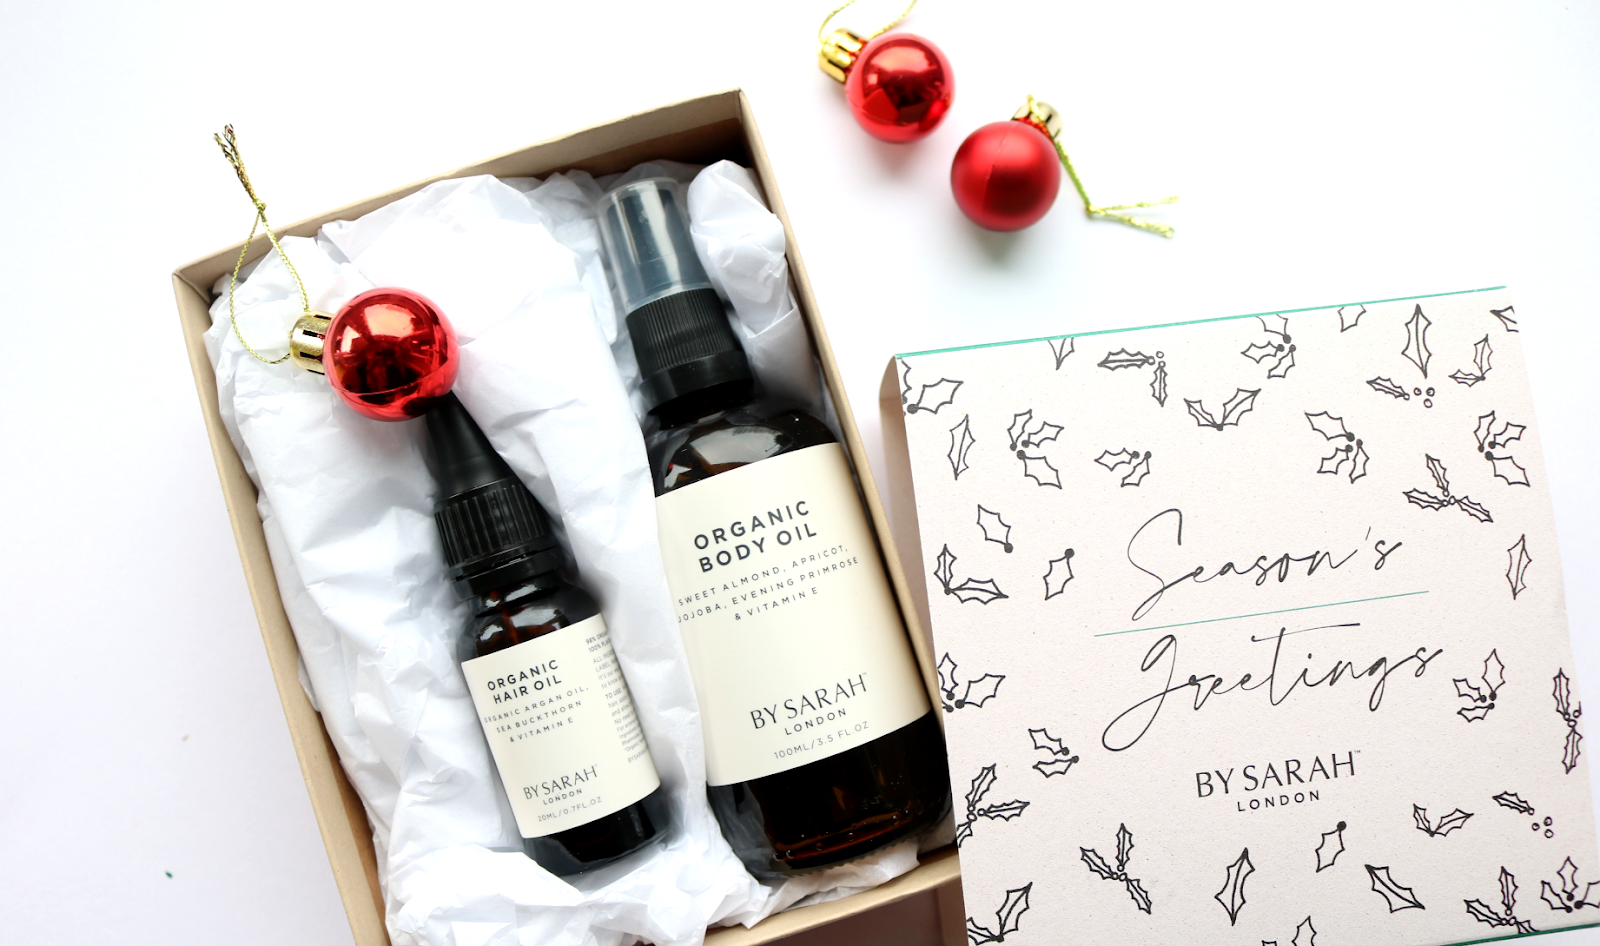 By Sarah London Seasons Greetings Organic Body & Hair Gift Set